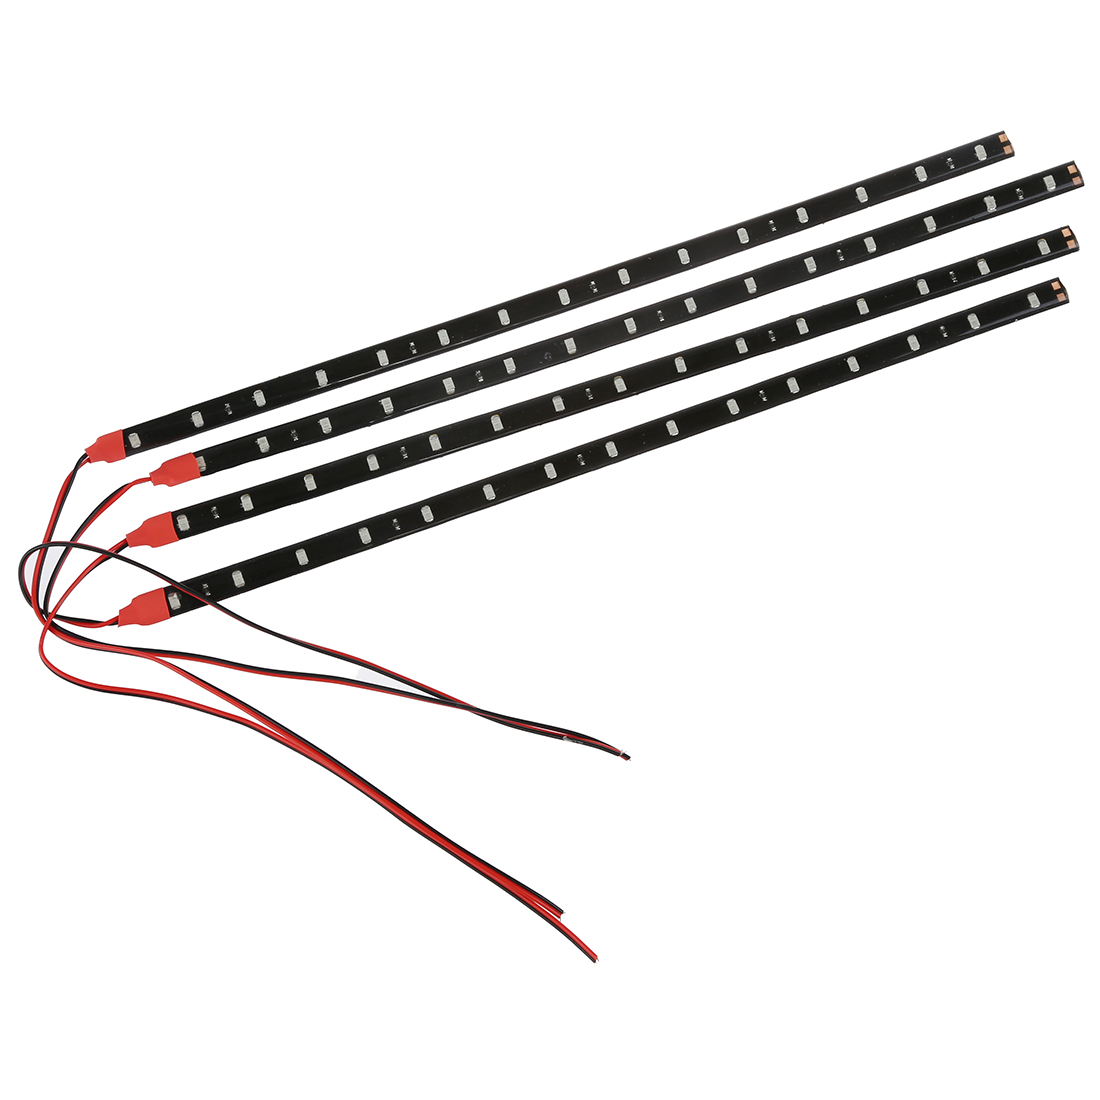 4 X Adhesive Strips15 Led 30cm 12v Waterproof Flexible